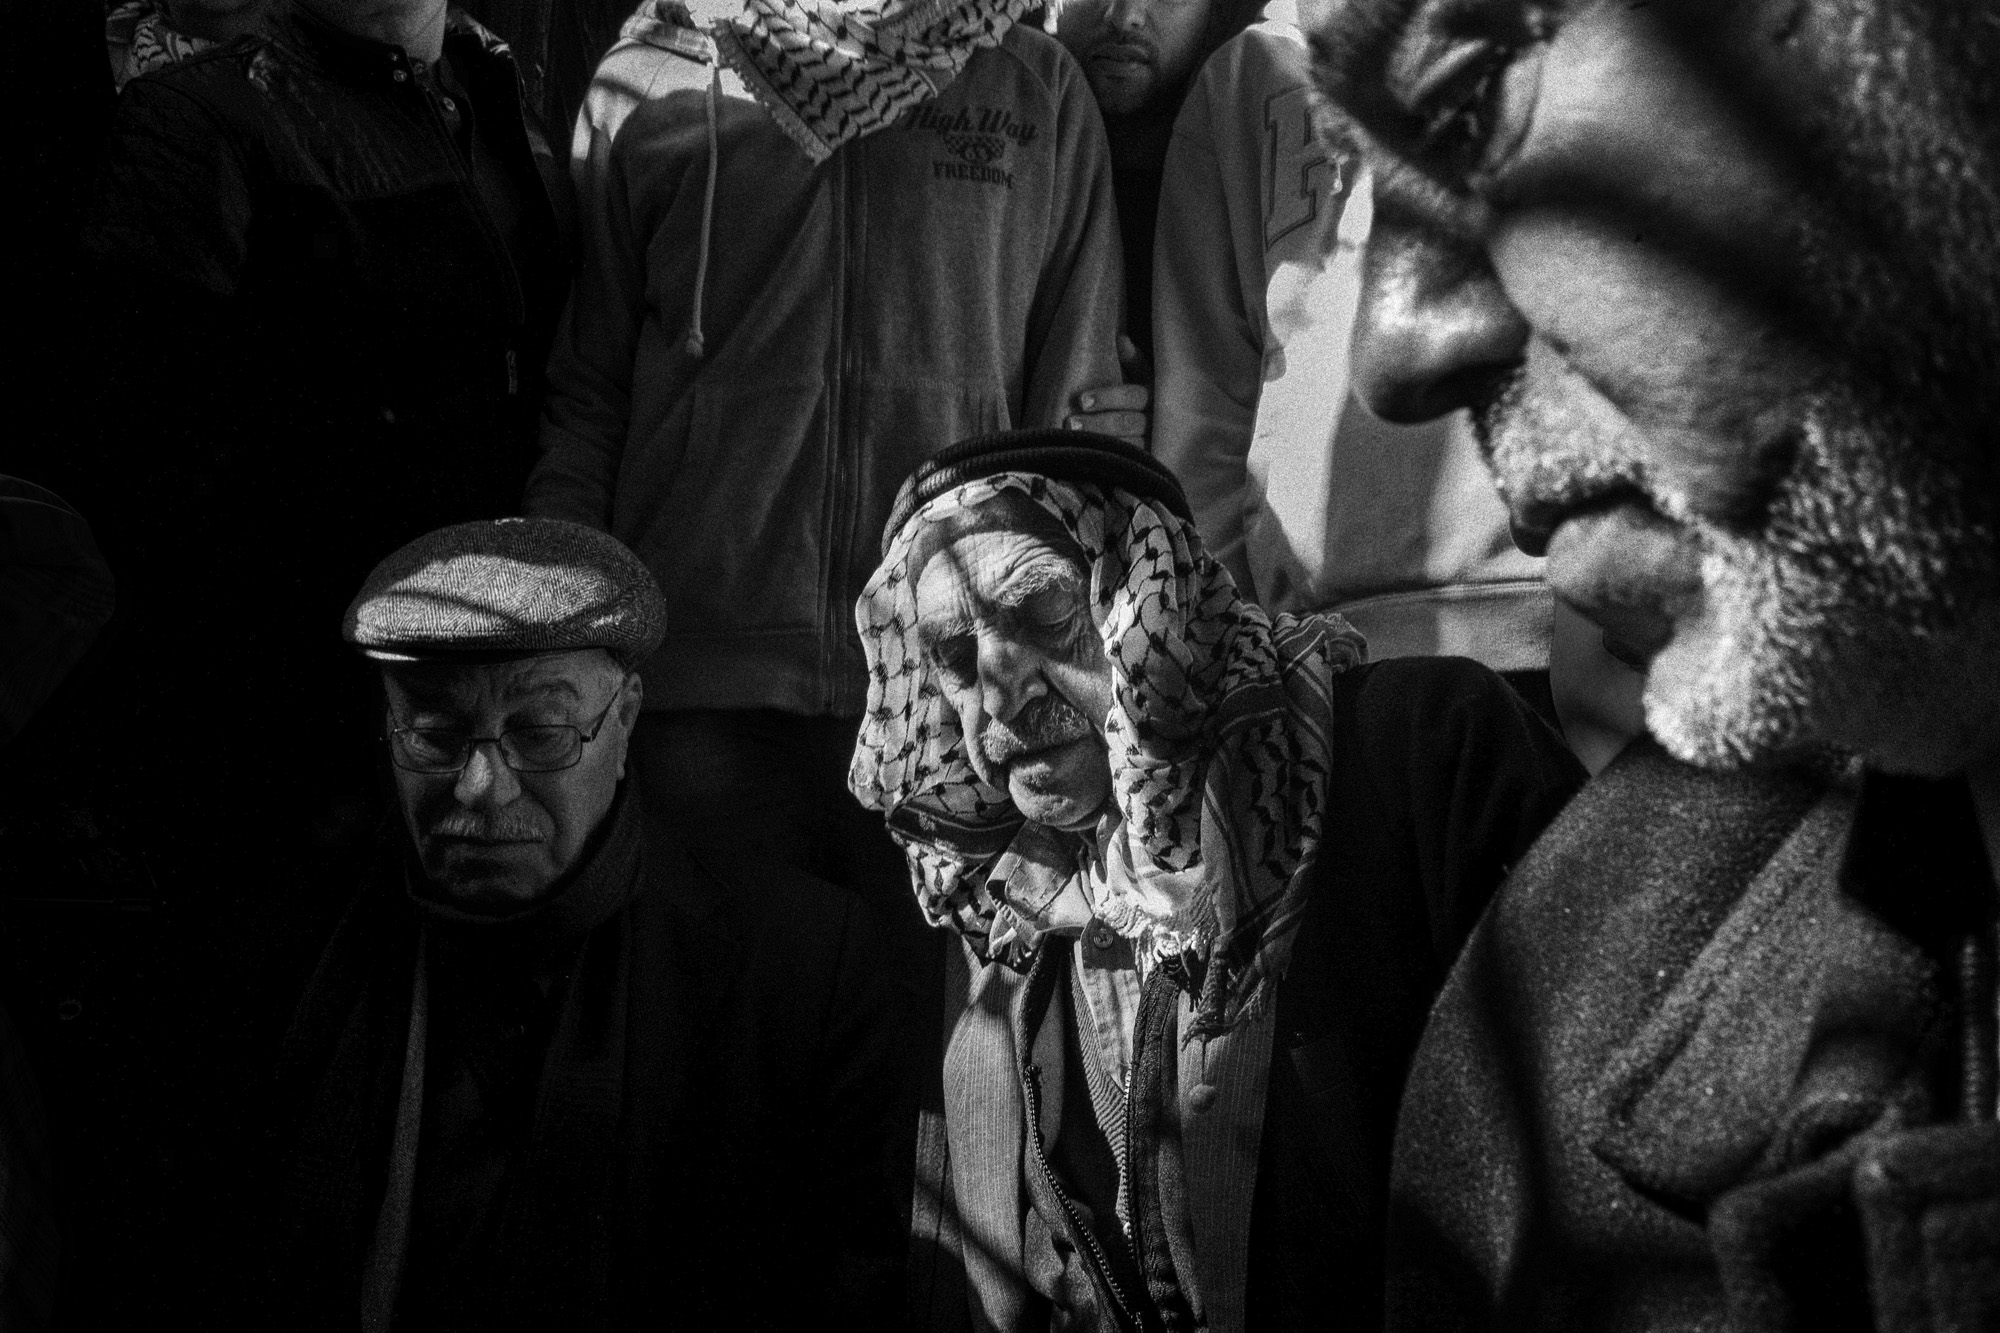 Family members attend the funeral of Shadi Arafa in Hebron, November 2015. Israel's Ministry of Foreign Affairs stated Arafa, a Palestinian mobile phone salesman, was killed by Palestinian gunfire during an attack in Gush Etzion, between Hebron and Jerusalem, but noted that official Palestinian sources said he was killed by Israeli forces.